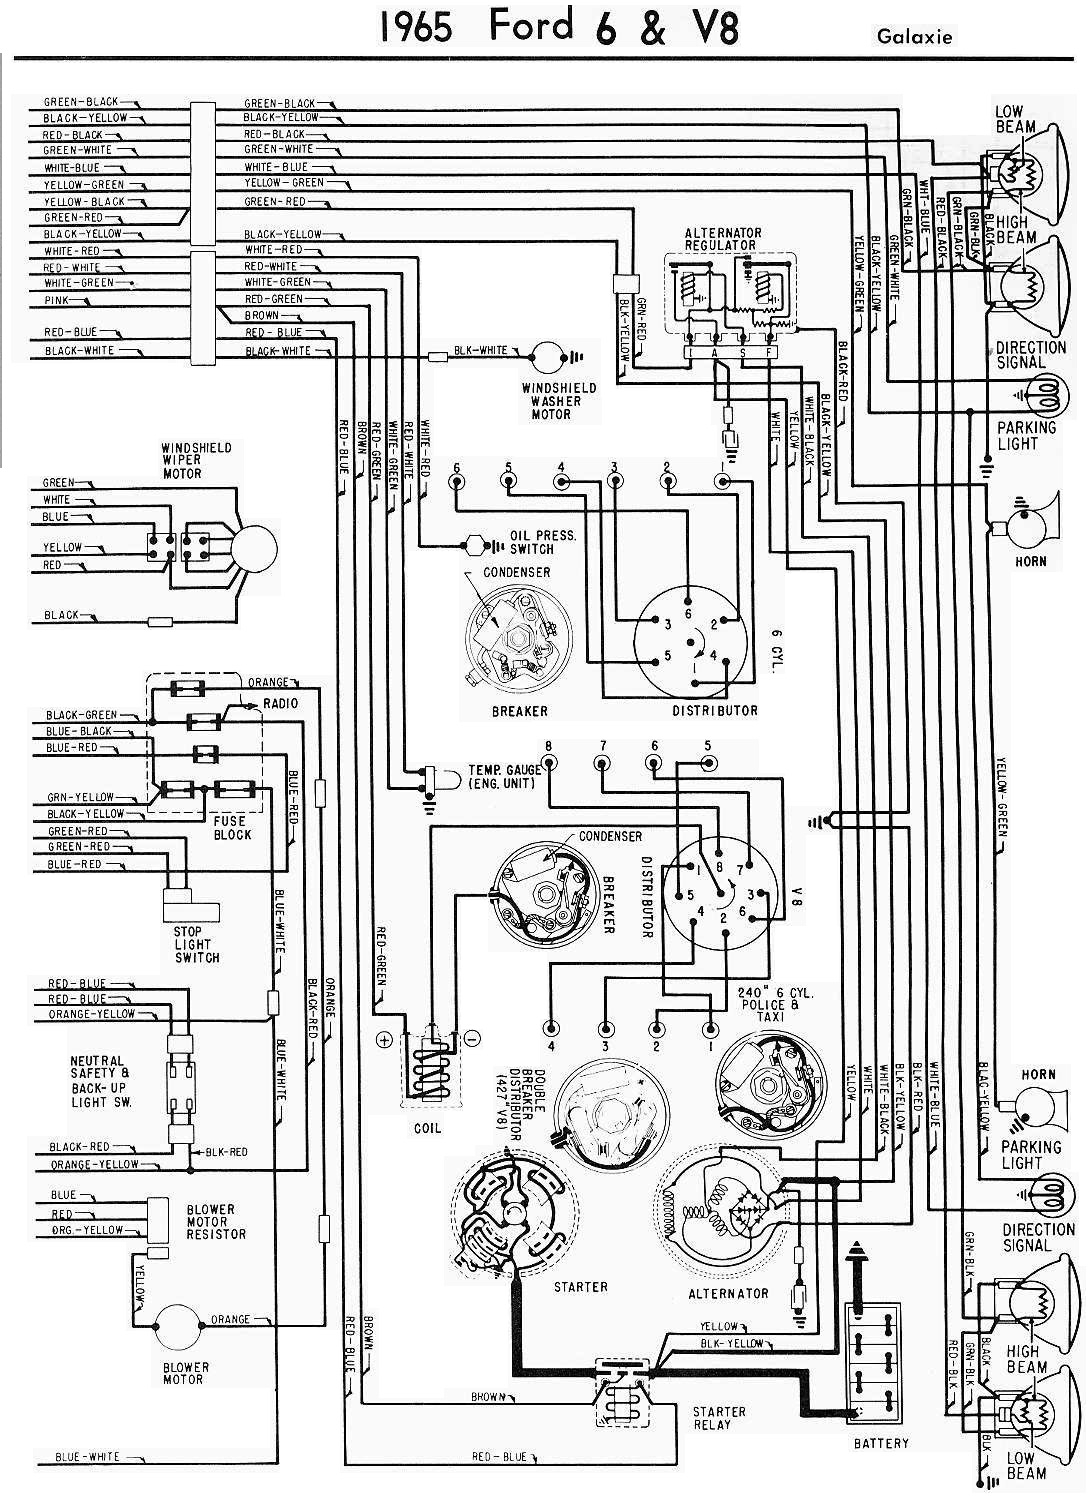 Ford Truck Wiring Pictures To Pin On Pinterest PinsDaddy - 1974 ford bronco ignition wiring diagram